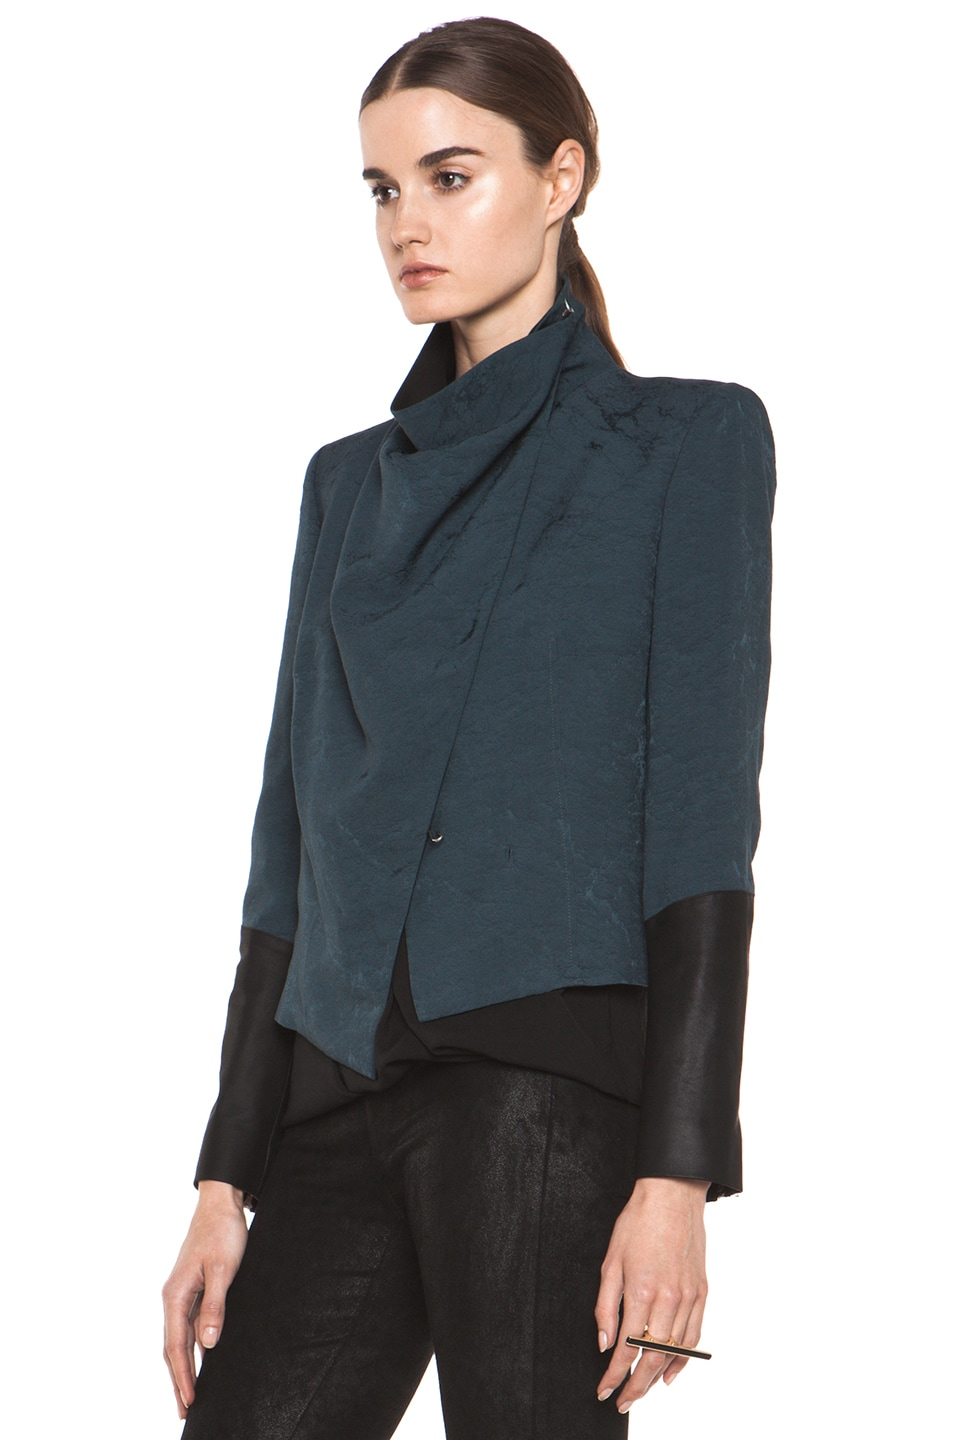 Image 3 of Helmut Lang Perma Jacquard Sleeve Combo Jacket in Dusty Sapphire